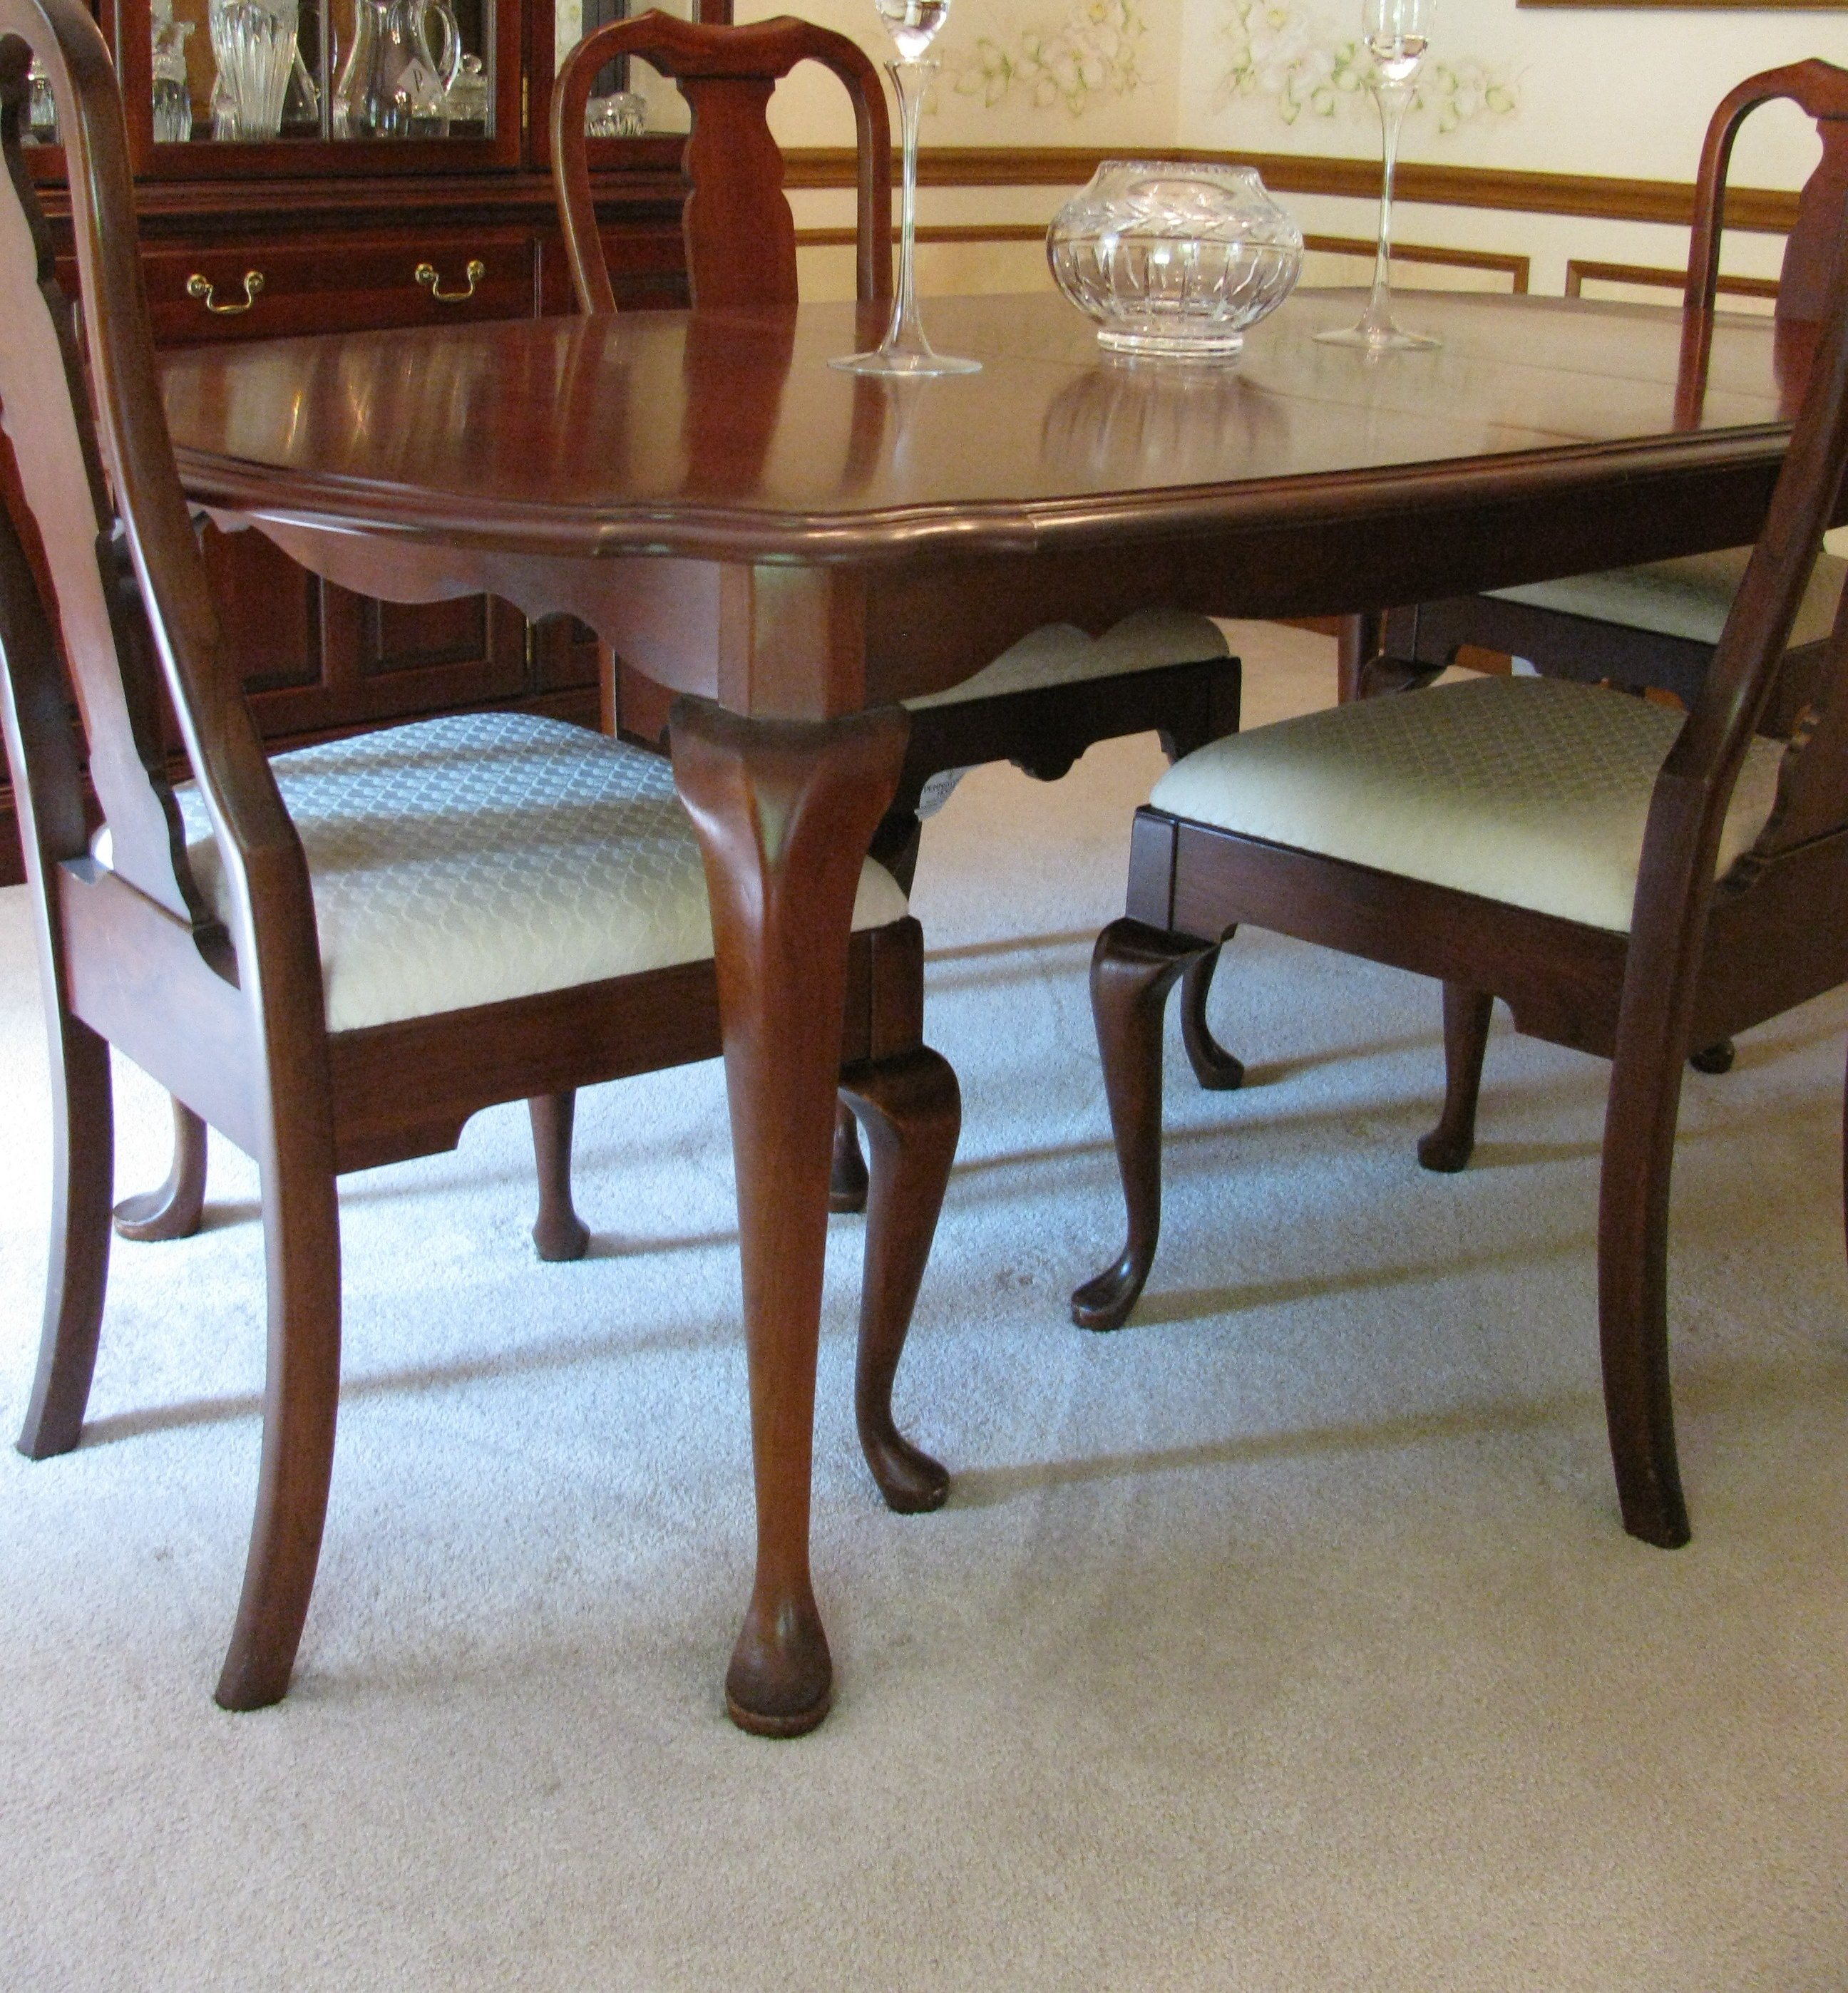 queen anne dining table drop leaf pennsylvania house cherry queen anne dining room table and chairs ebth